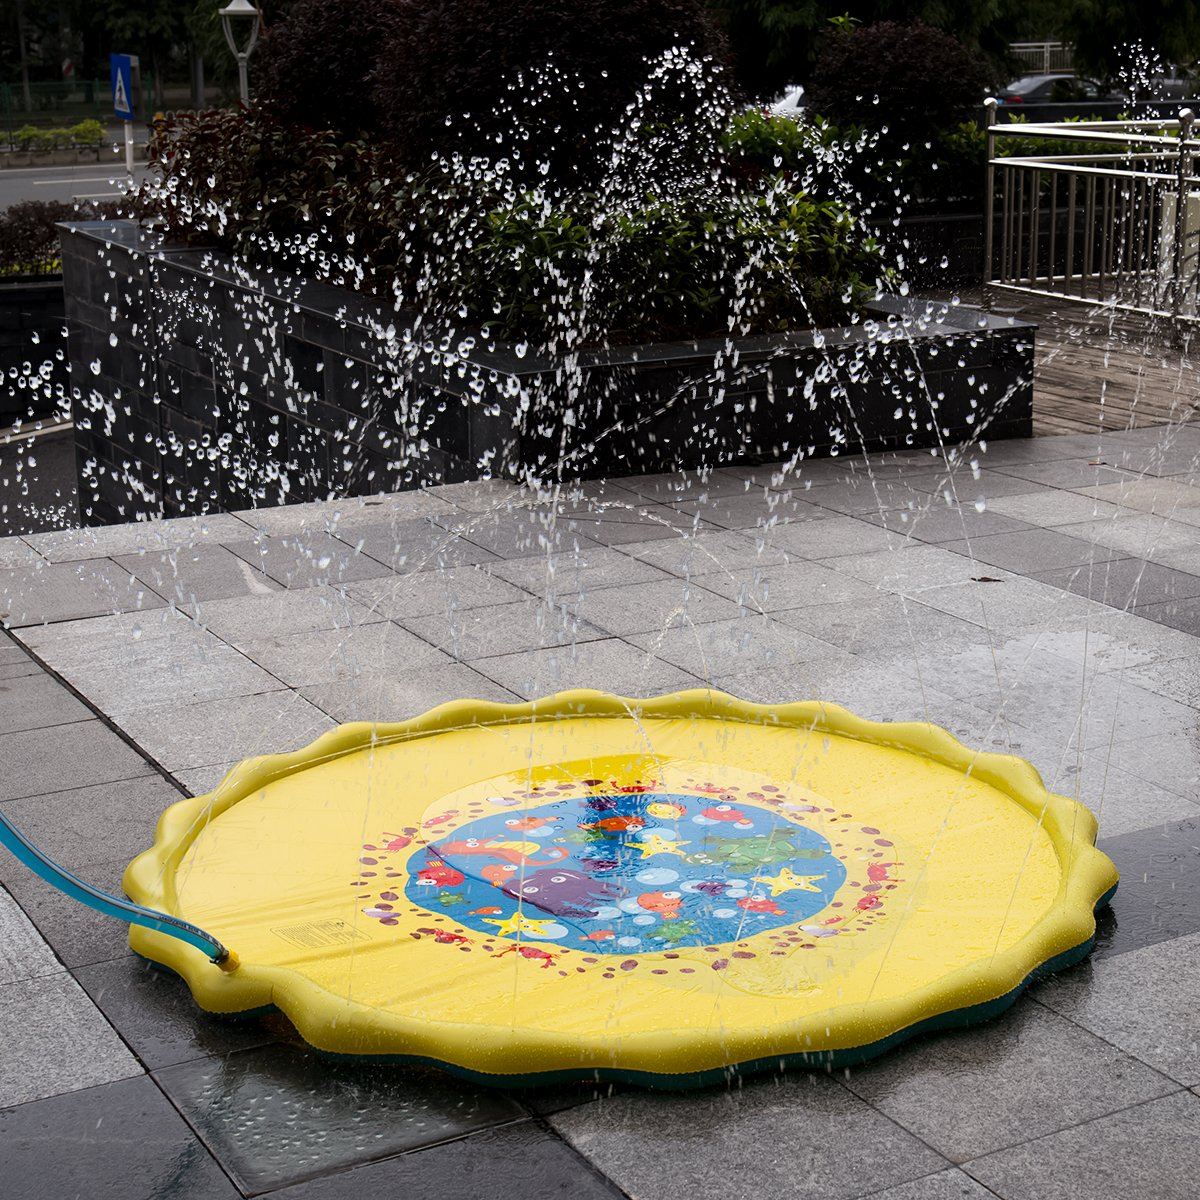 HALOFUN 67in-Diameter Sprinkle and Splash Play Mat for Kids Summer Gifts by HALOFUN